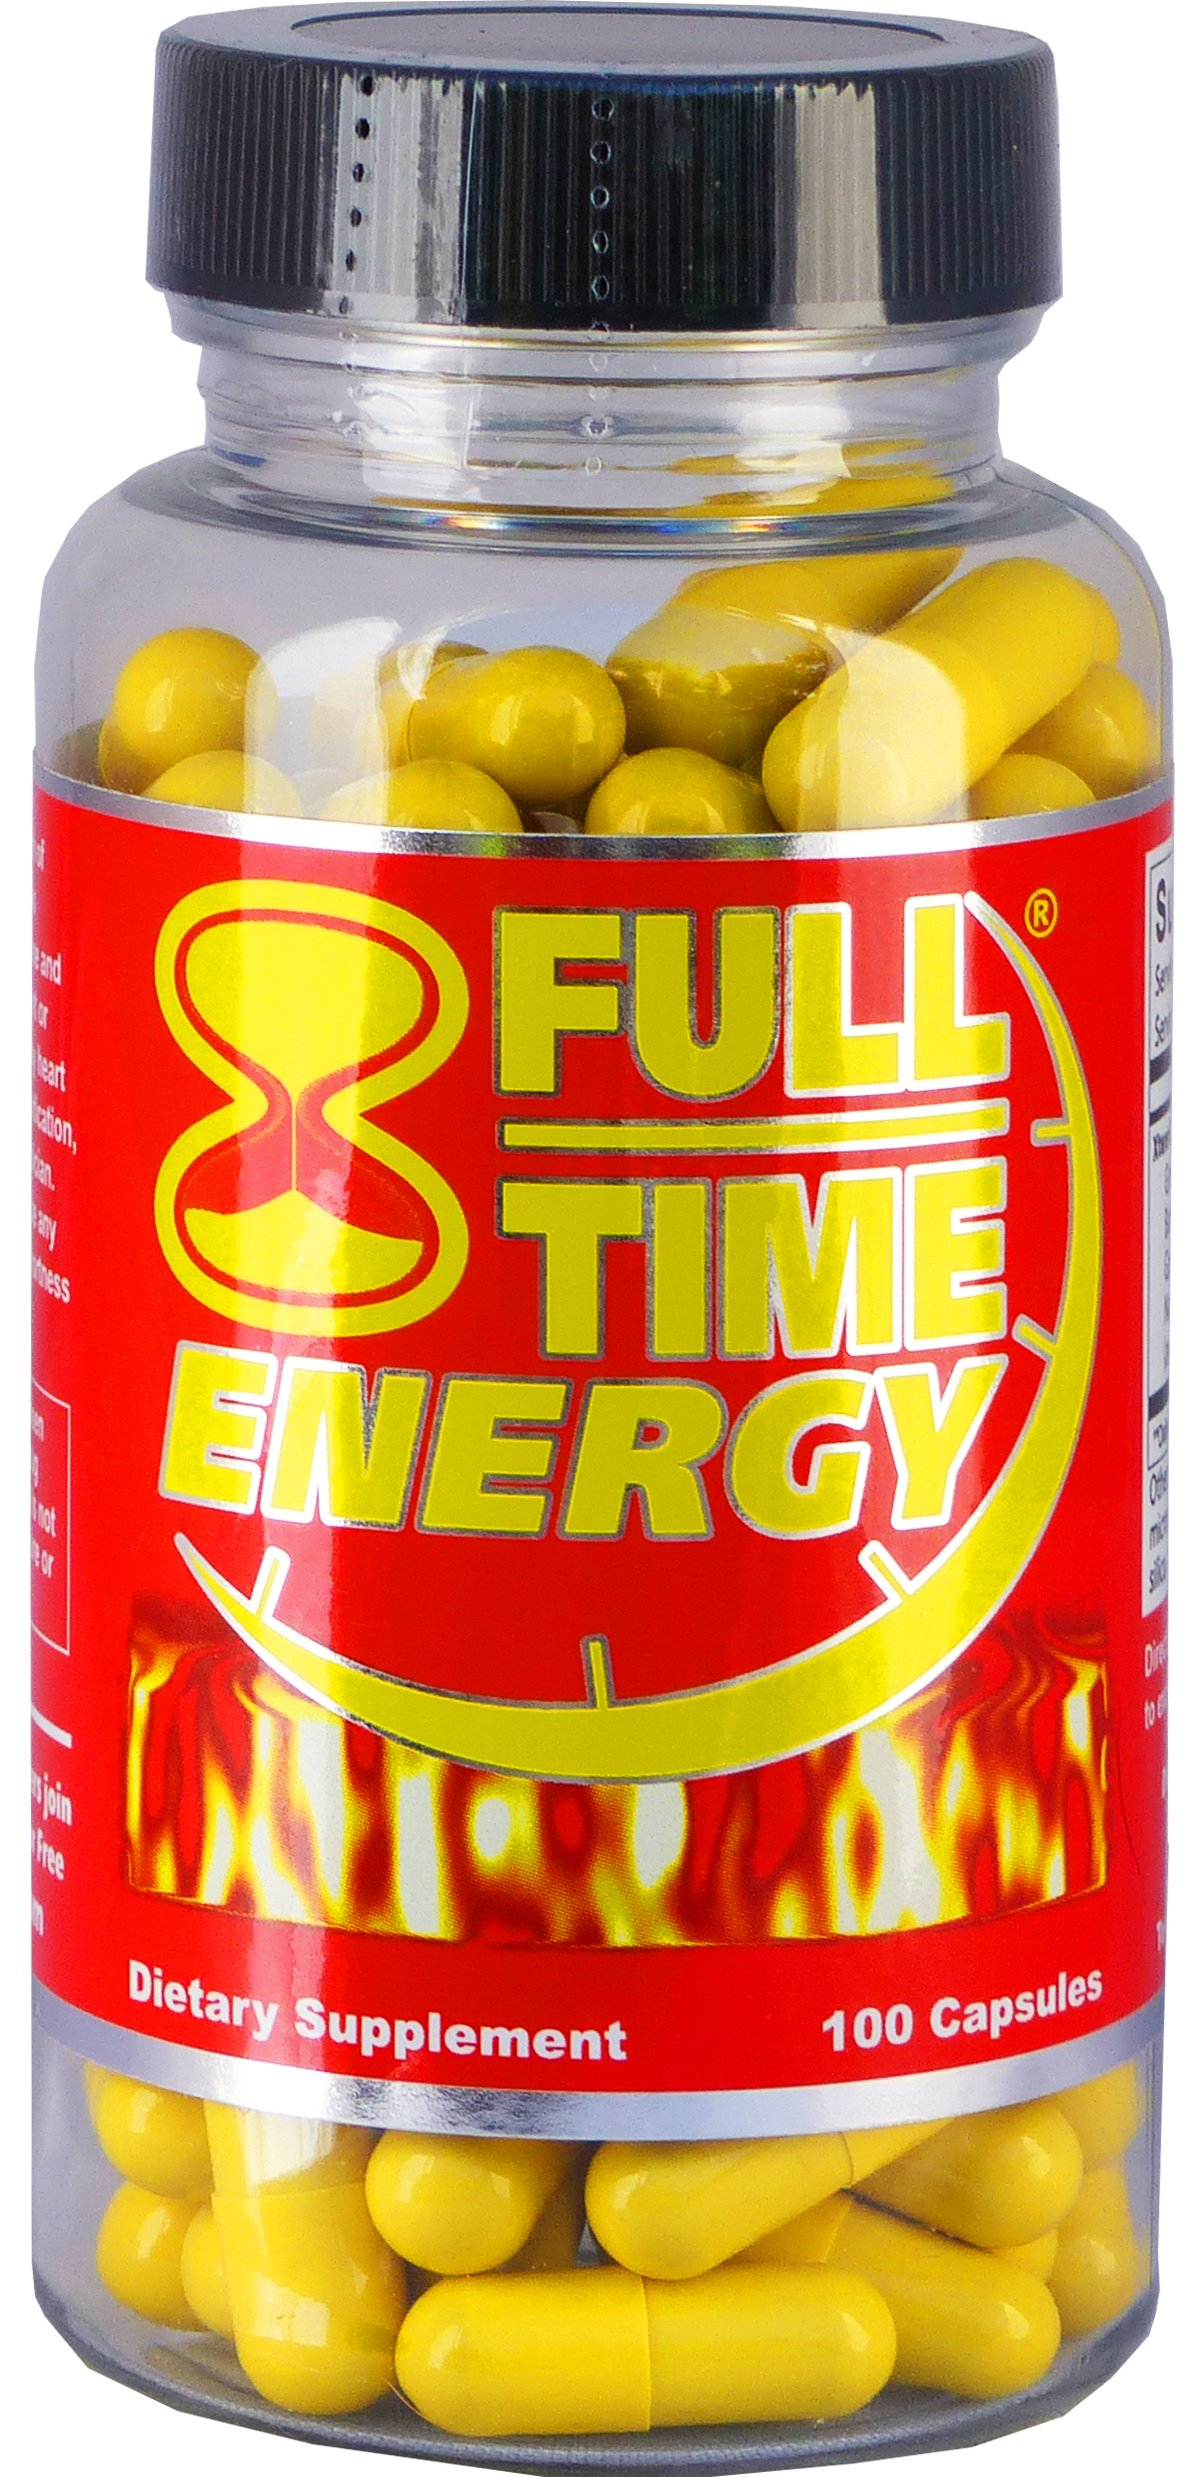 Full-Time Energy Pills 100 Capsules Silver - Best Energy Boosters for Men and Women by Full Time